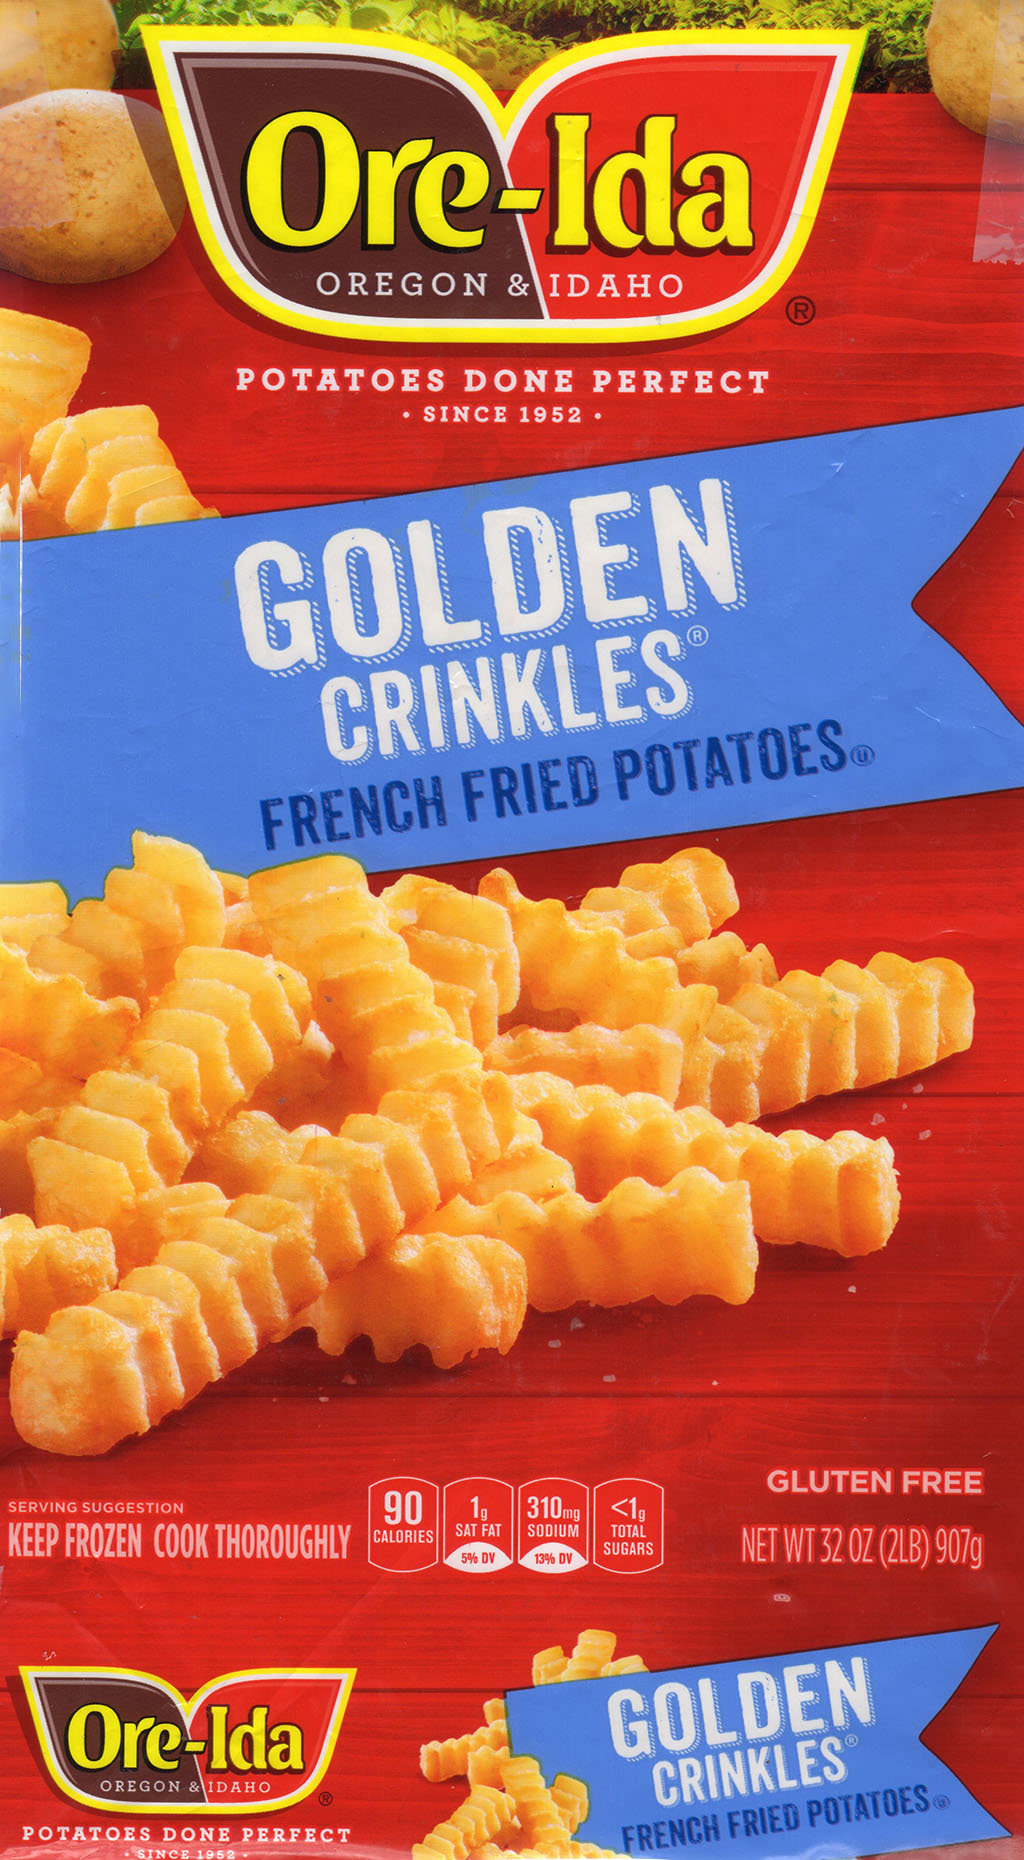 Ore-Ida Golden Crinkles French Fried Potatoes package front